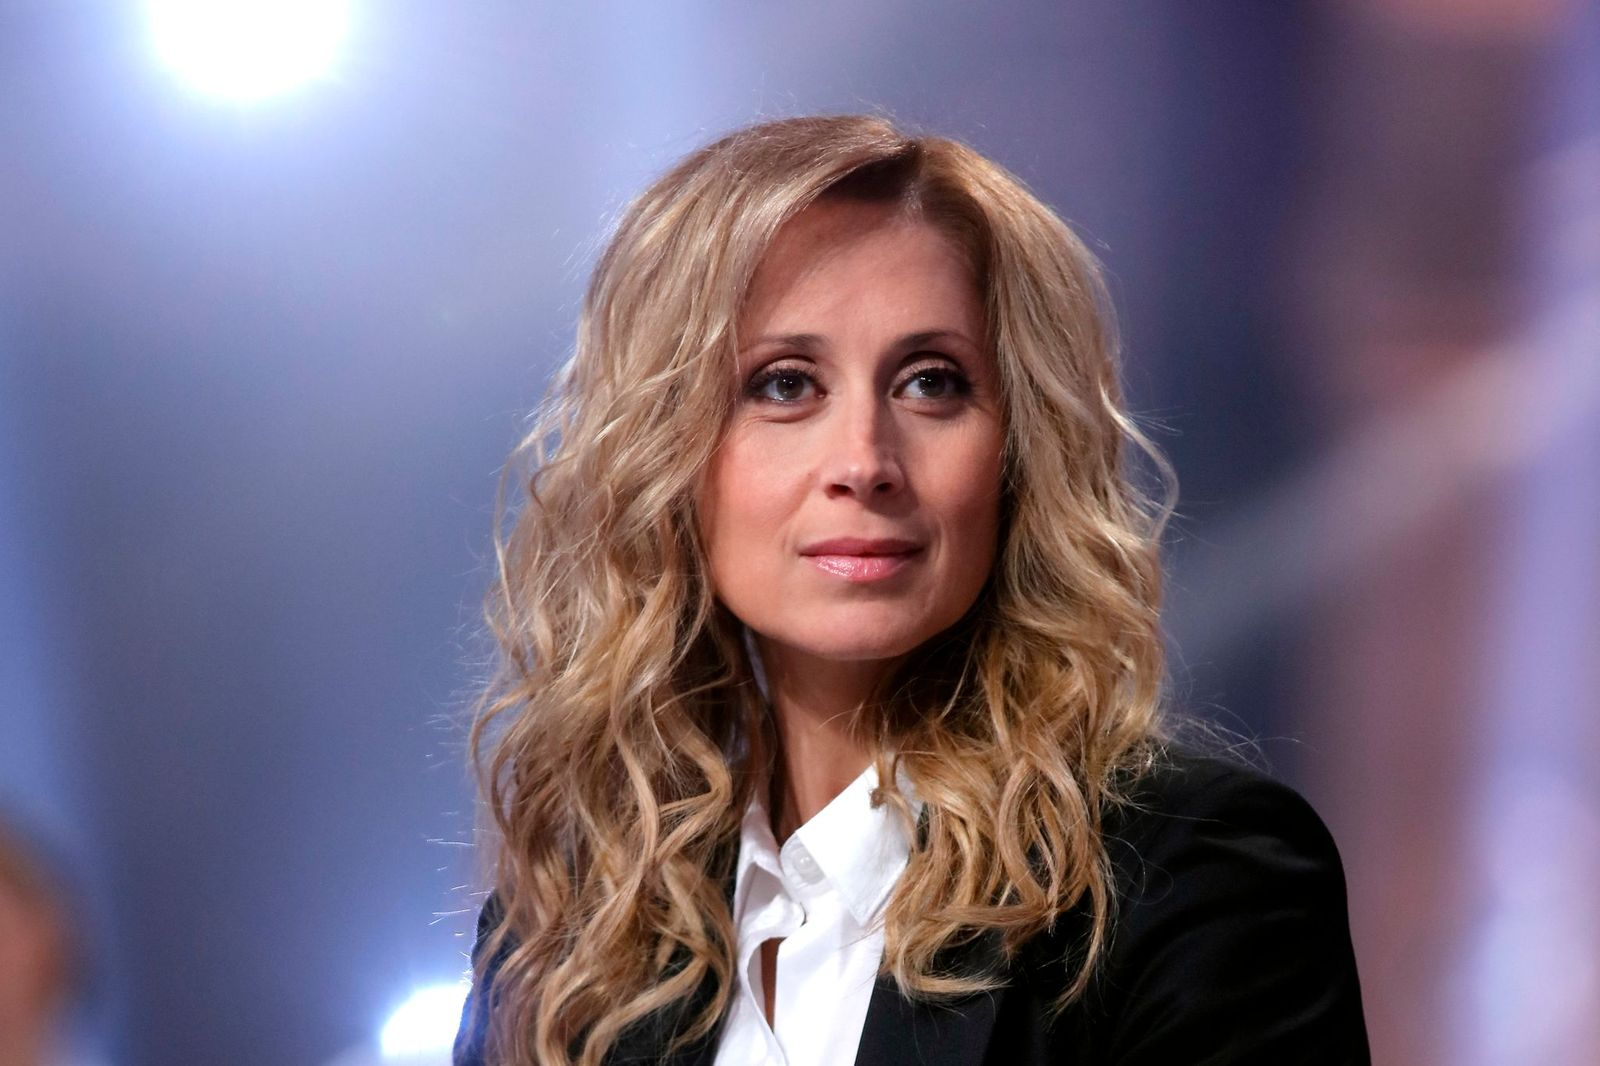 La chanteuse Lara Fabian | Photo : Getty Images.